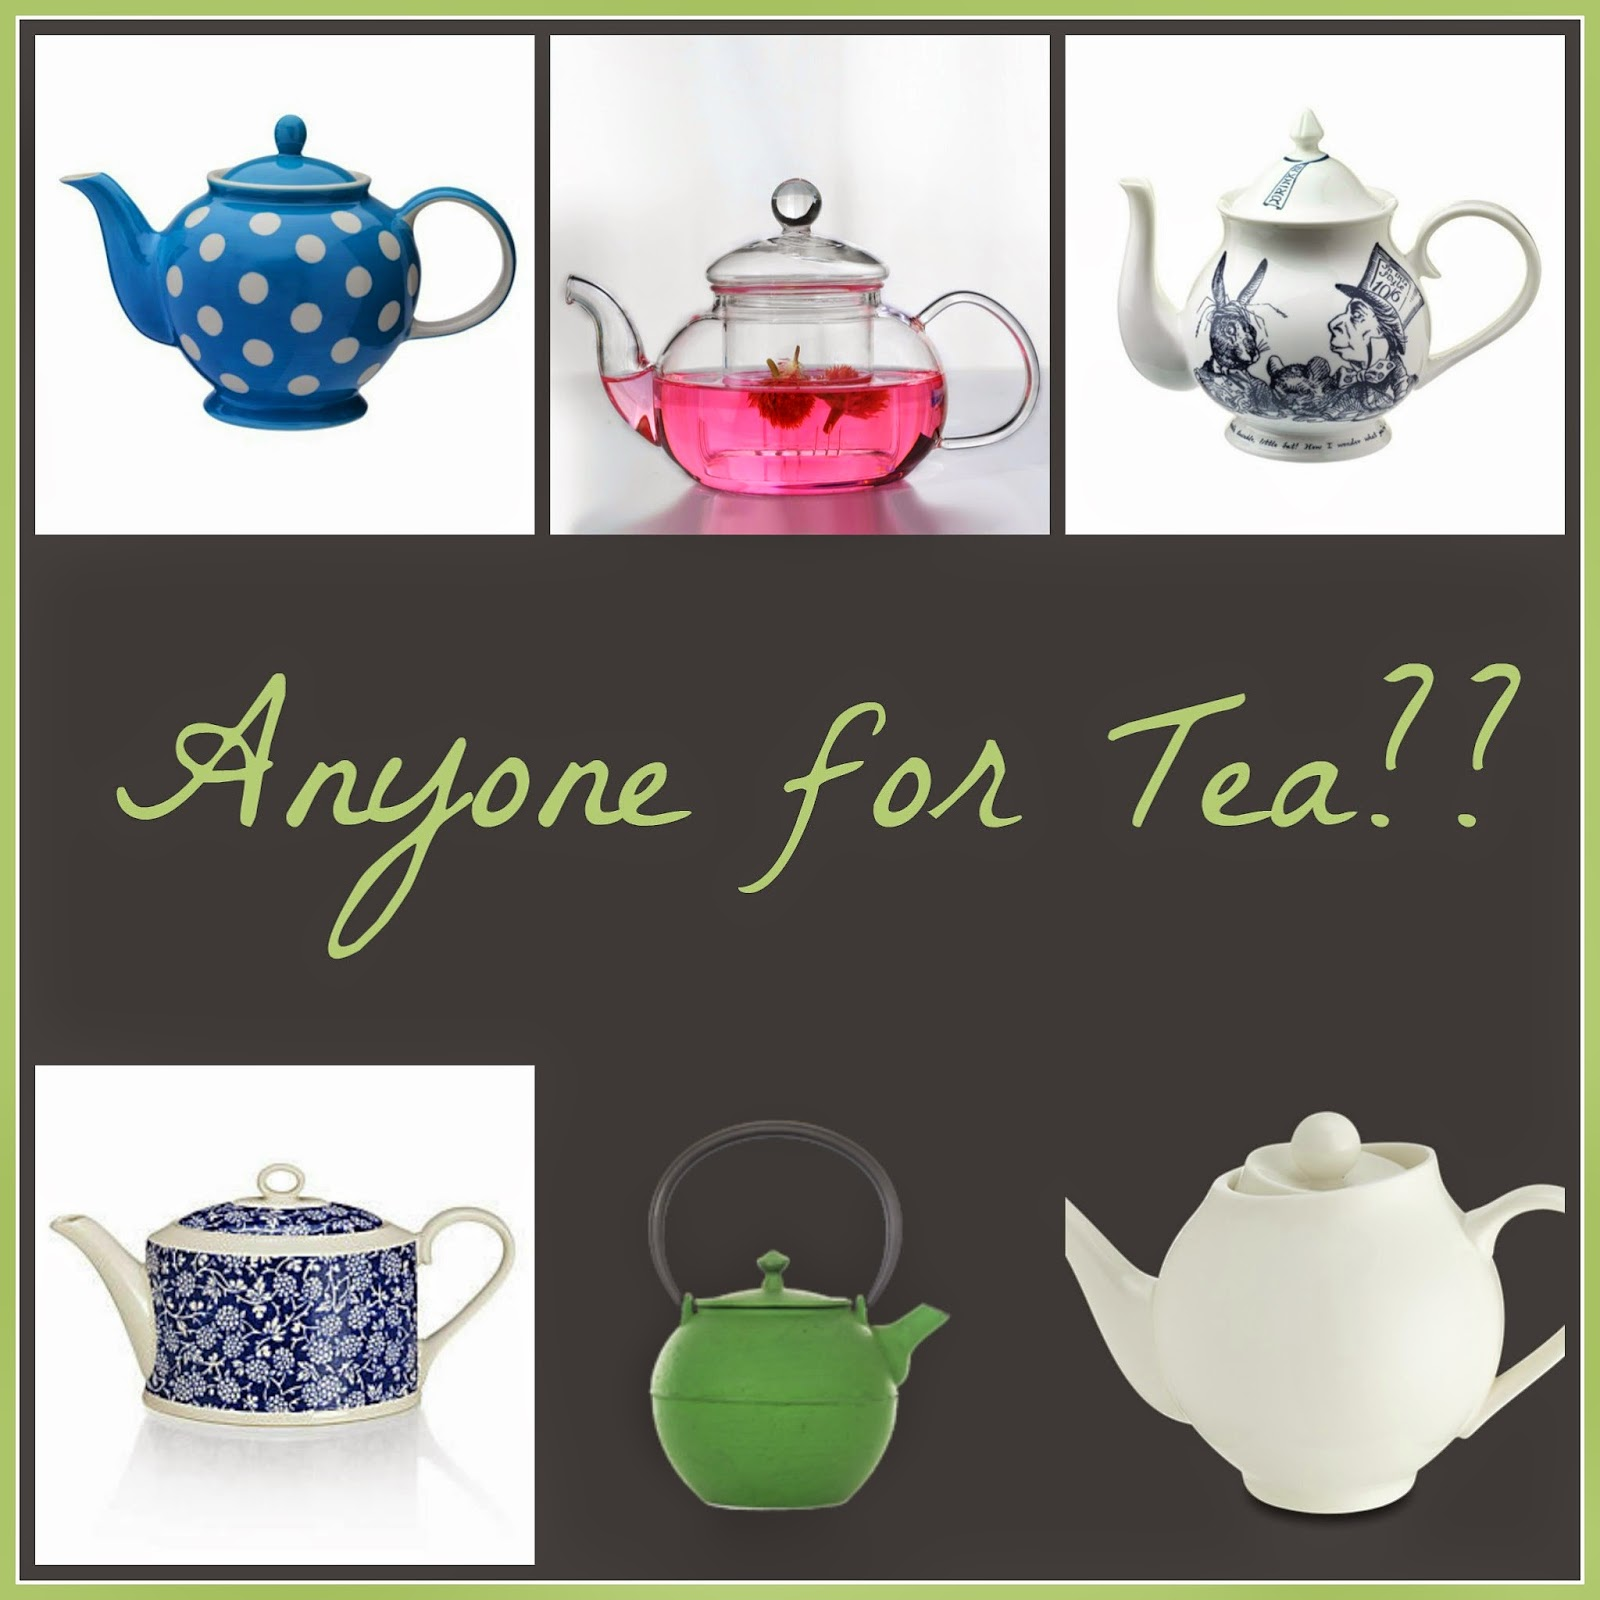 Kitchenalia - Teapots & Cosies